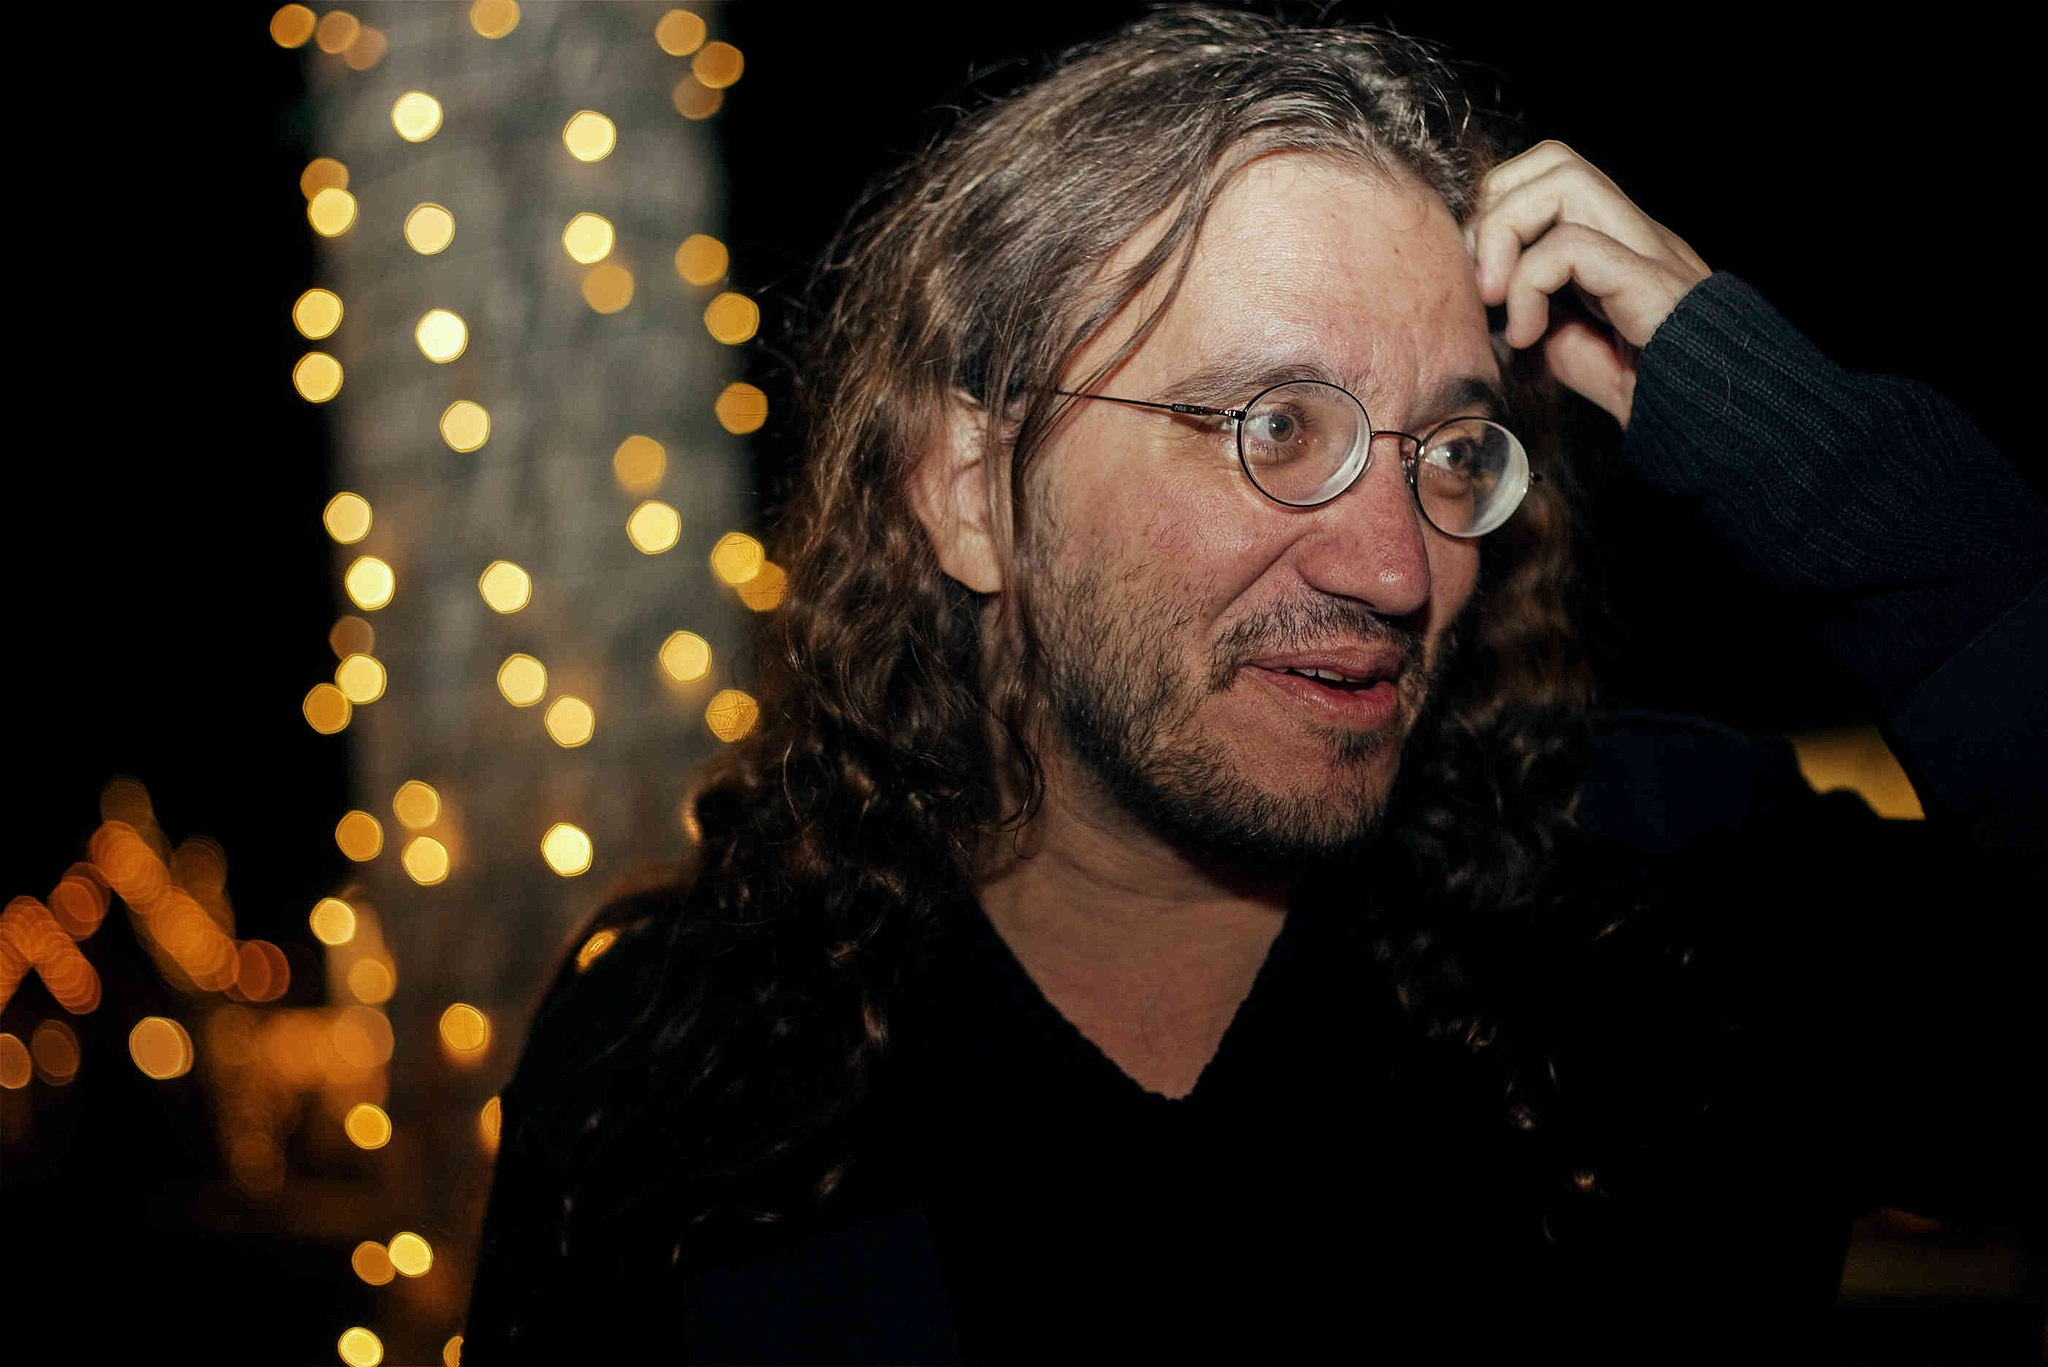 Photograph of Dr. Ben Goertzel